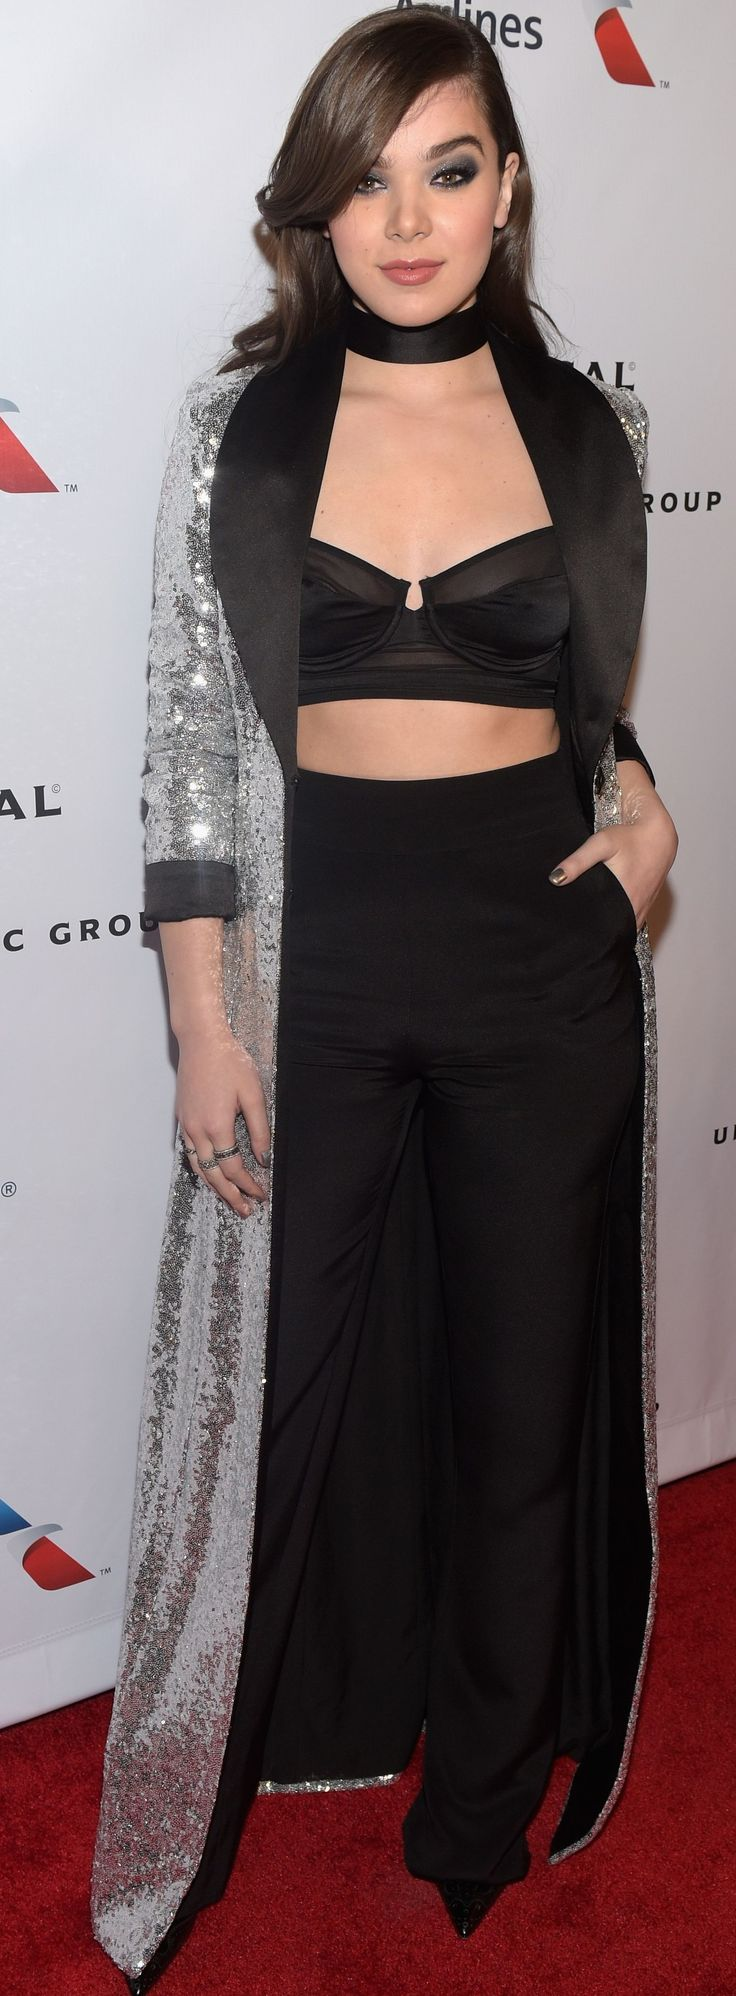 Actress and singer Hailee Steinfeld wearing CRISTALLINI on the red carpet at the 2016 Grammy Awards! #cristallini #haileesteinfeld #grammys #redcarpetstyle #custommade #celebritystyle #sequins